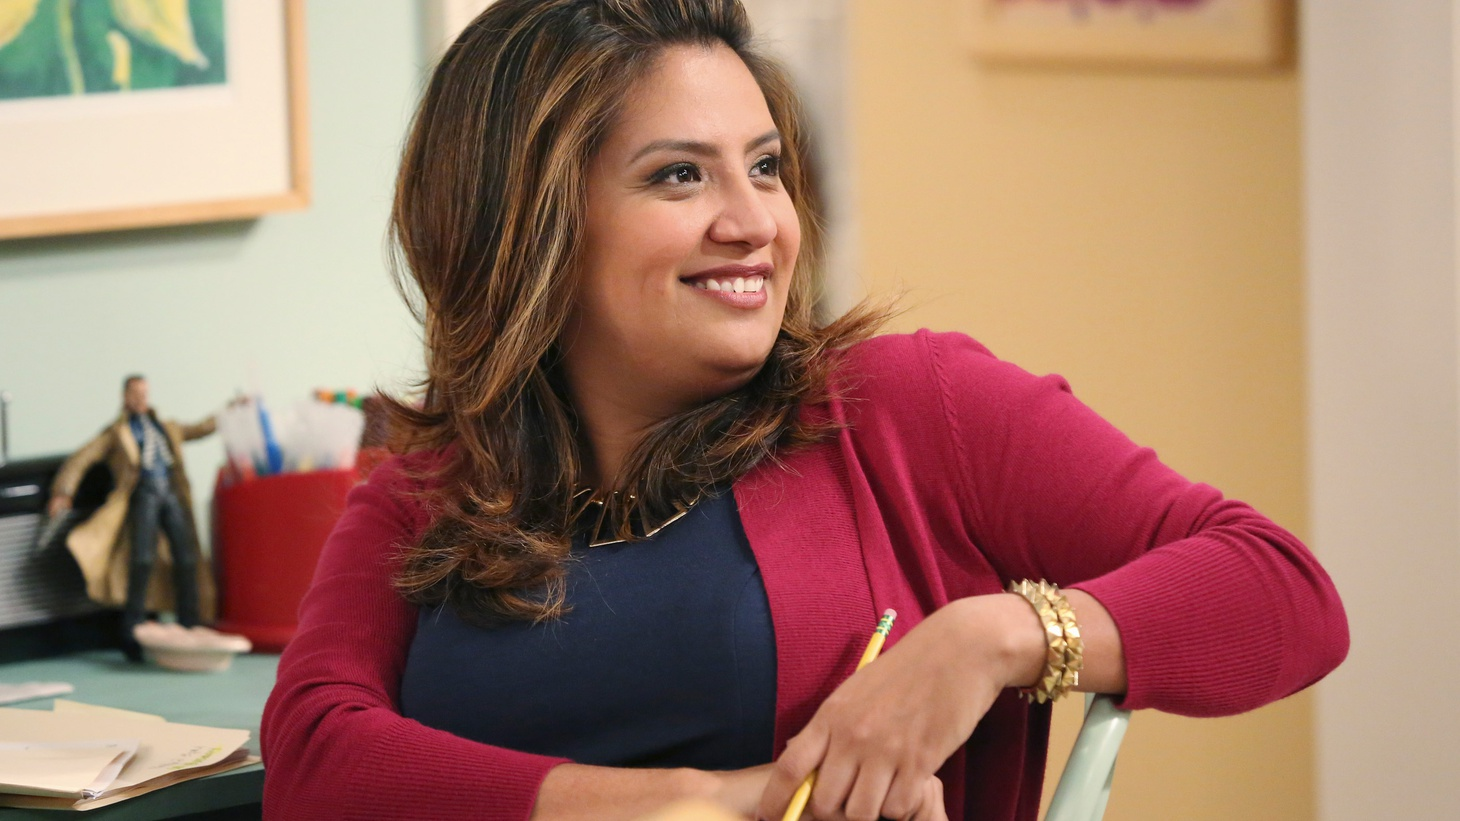 Cristela Alonzo was thrilled to sell a script to ABC, but the show seemed dead after the network decided not to shoot a pilot. She tells us how she was able to resurrect Cristela. Then, meet the woman who has been called the Meryl Streep of audiobook narration.